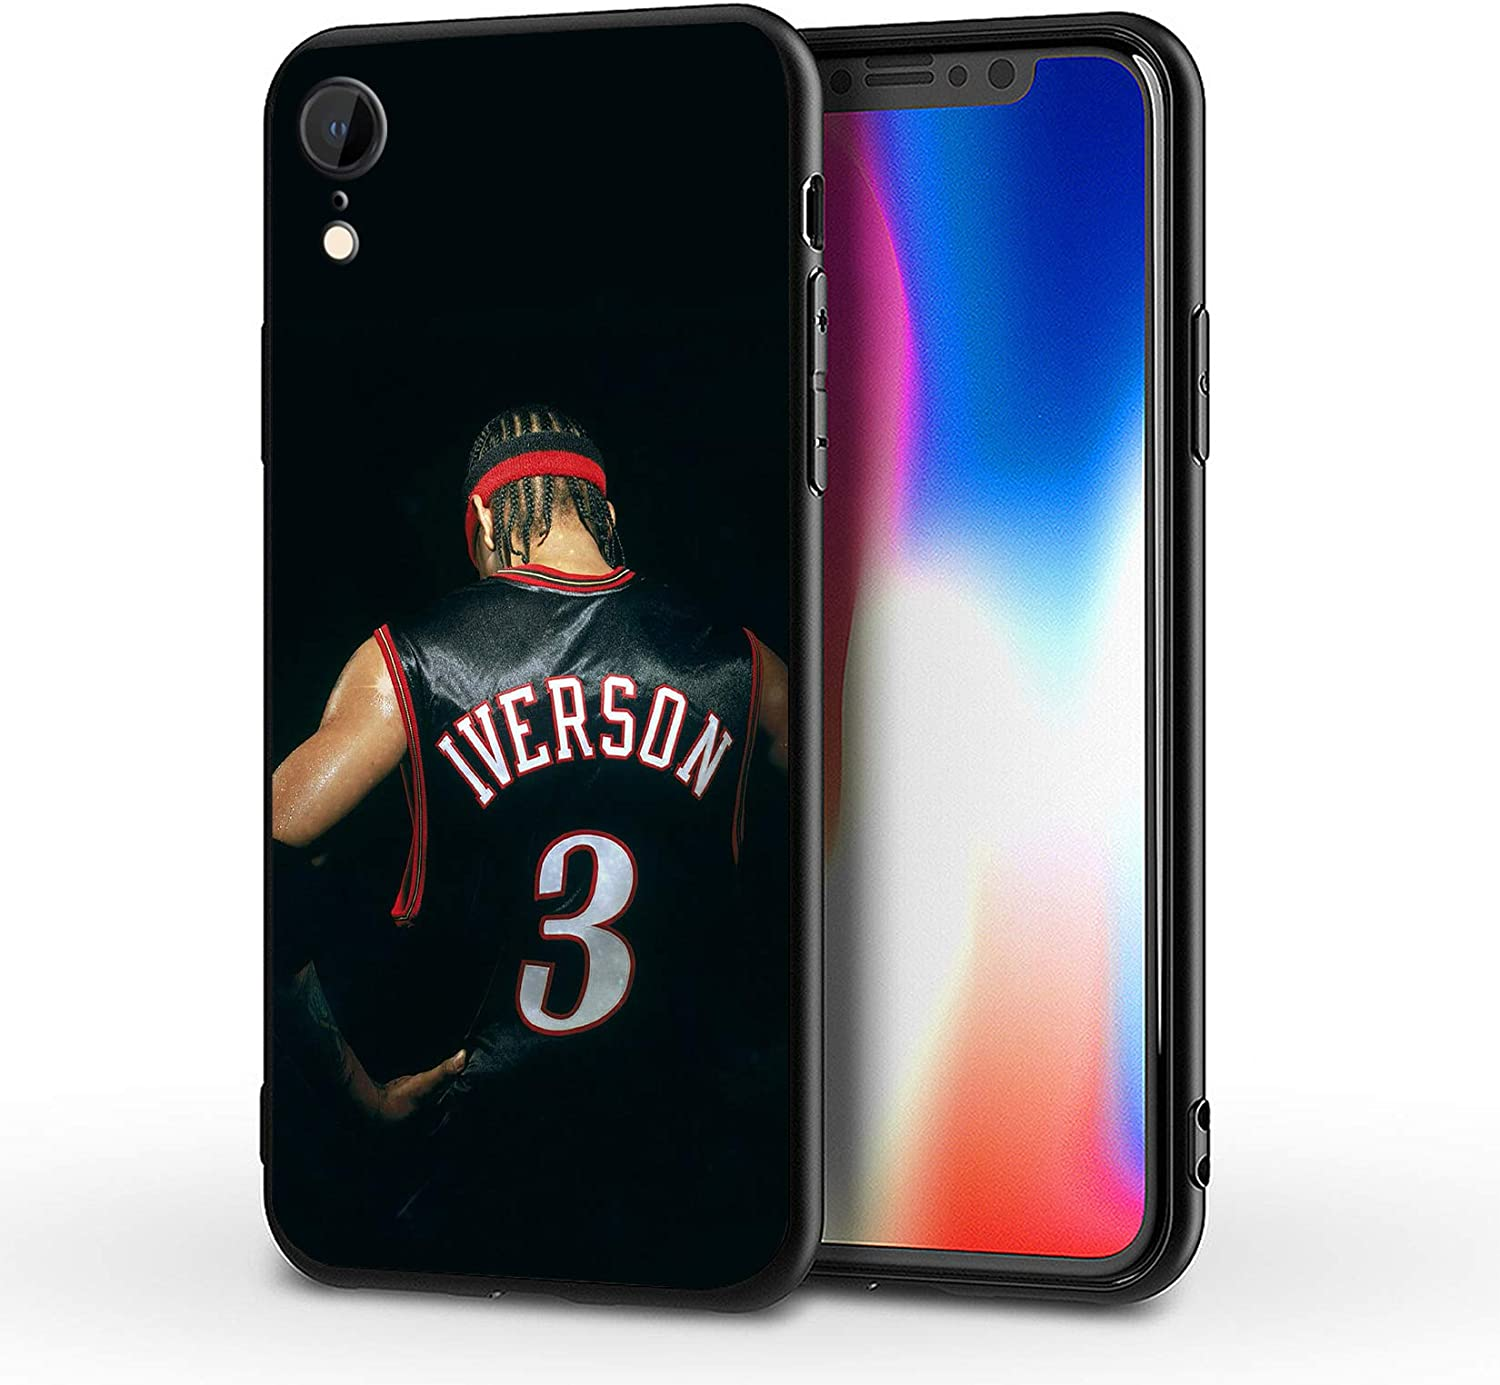 SUPTIIN iPhone XR Case,Basketball Star Protective Shockproof Anti-Scratch Soft Bumper Cases (Iverson)